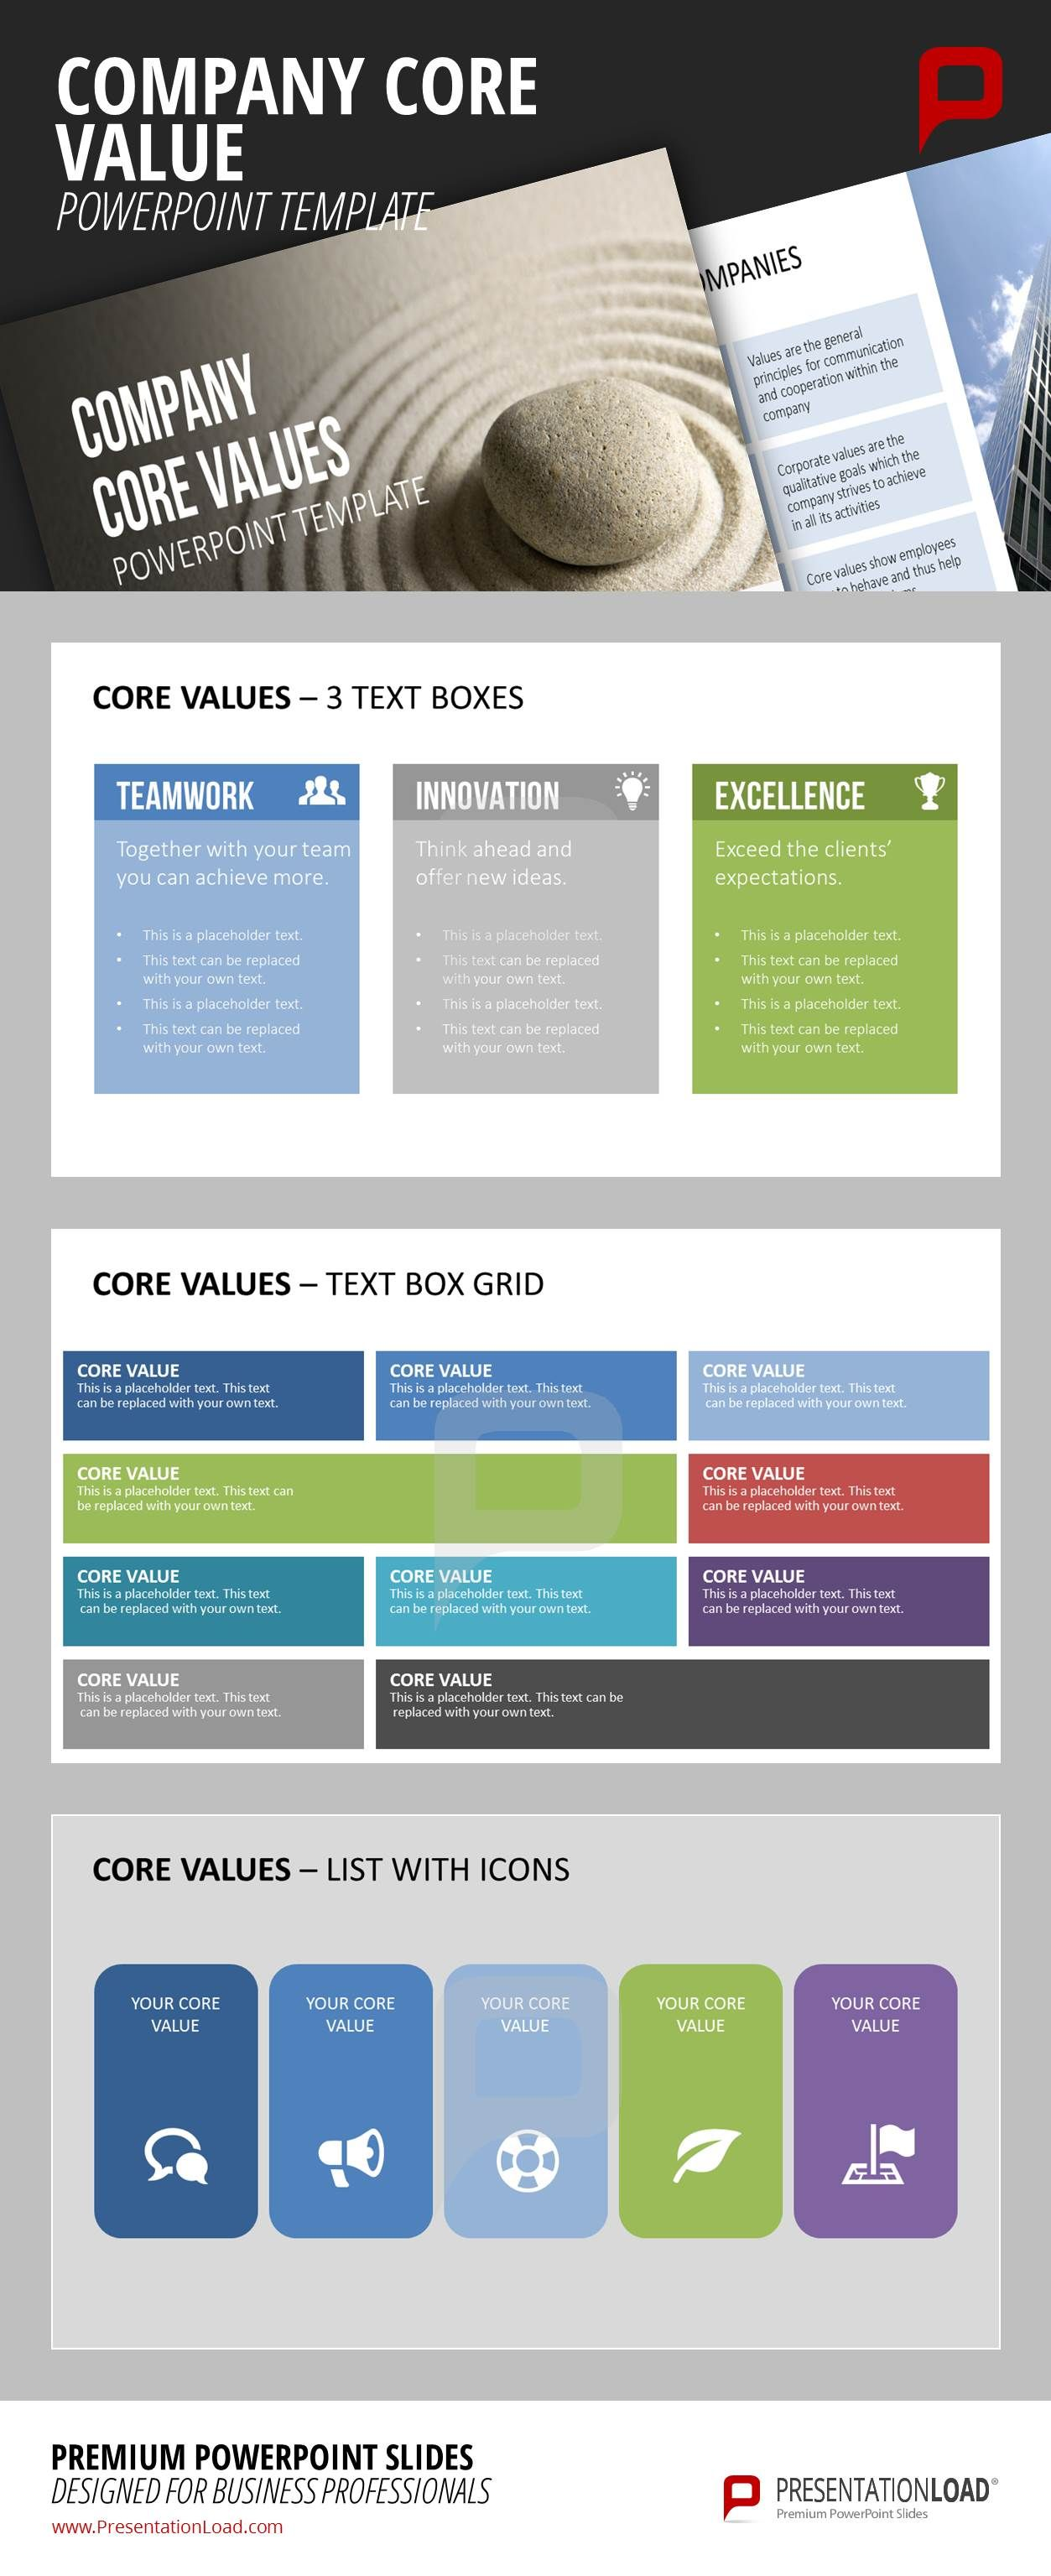 get more in detail while presenting your core values and make use of